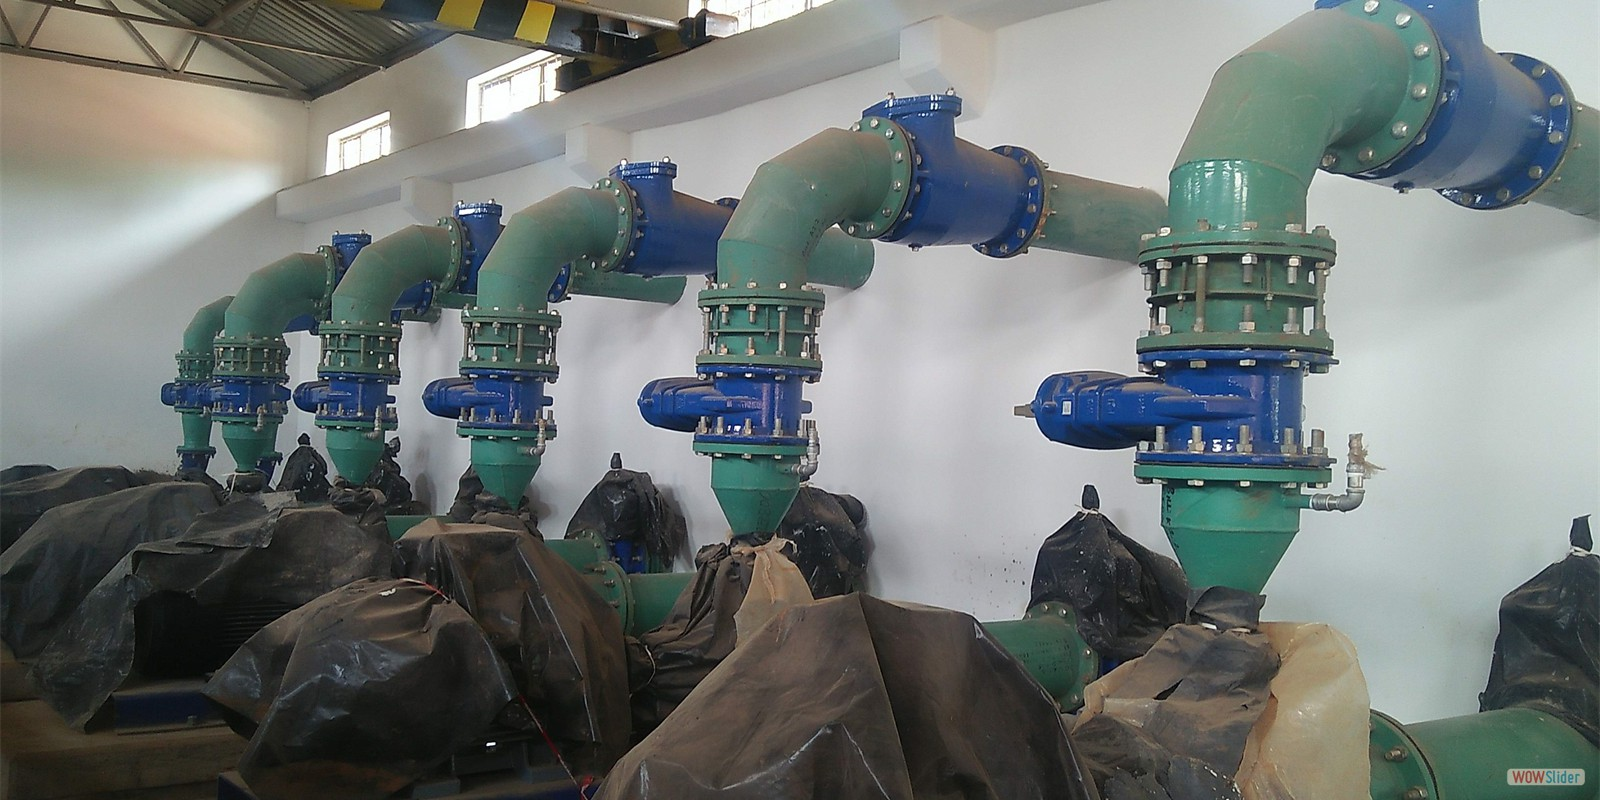 KEGATI NEW PUMPING SYSTEM